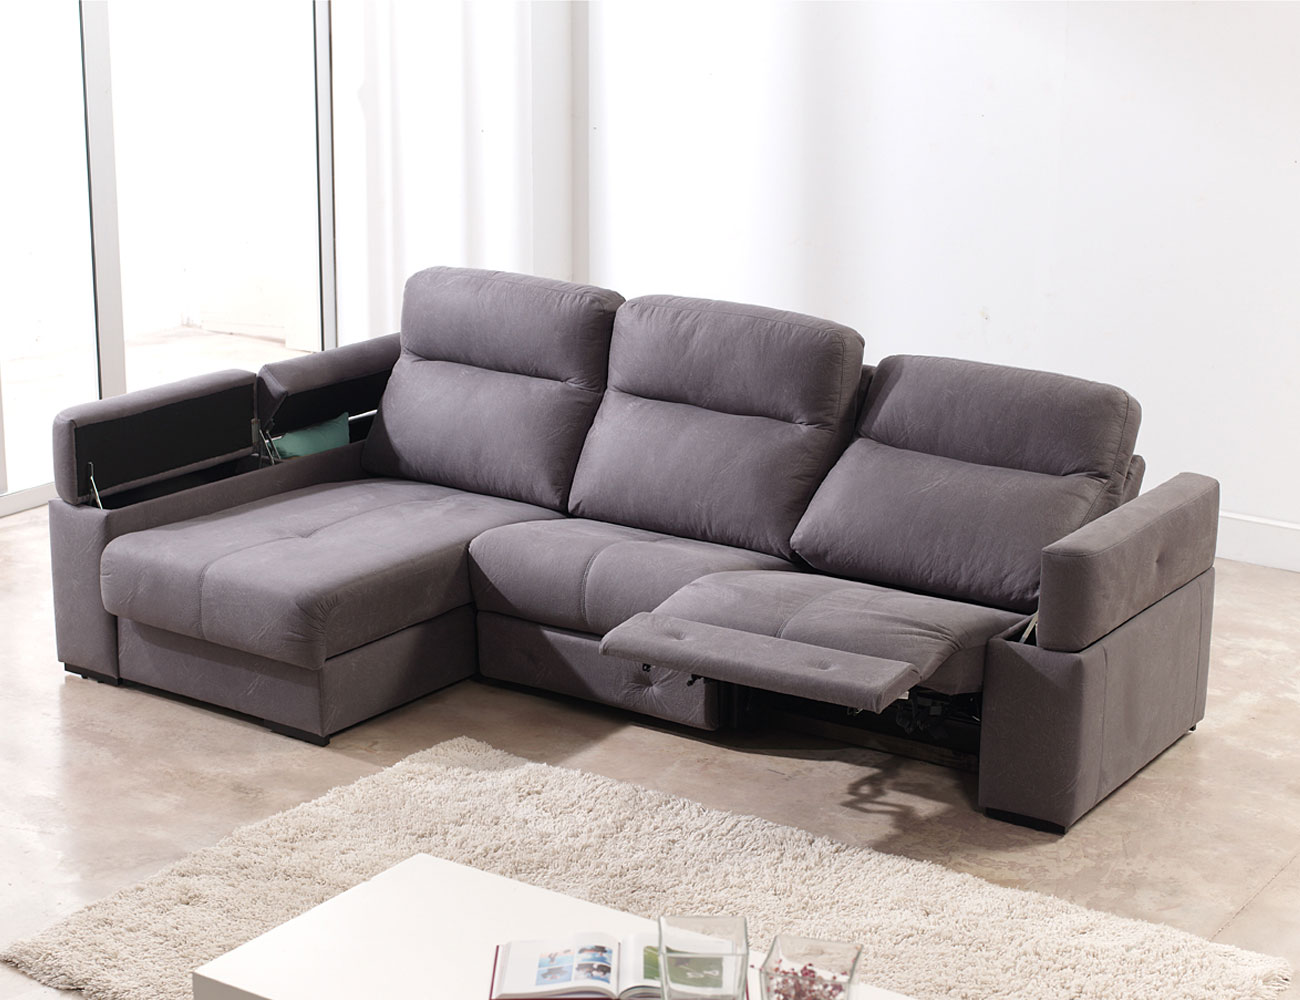 Sofa chaiselongue relax motor electrico 3 arcon 114